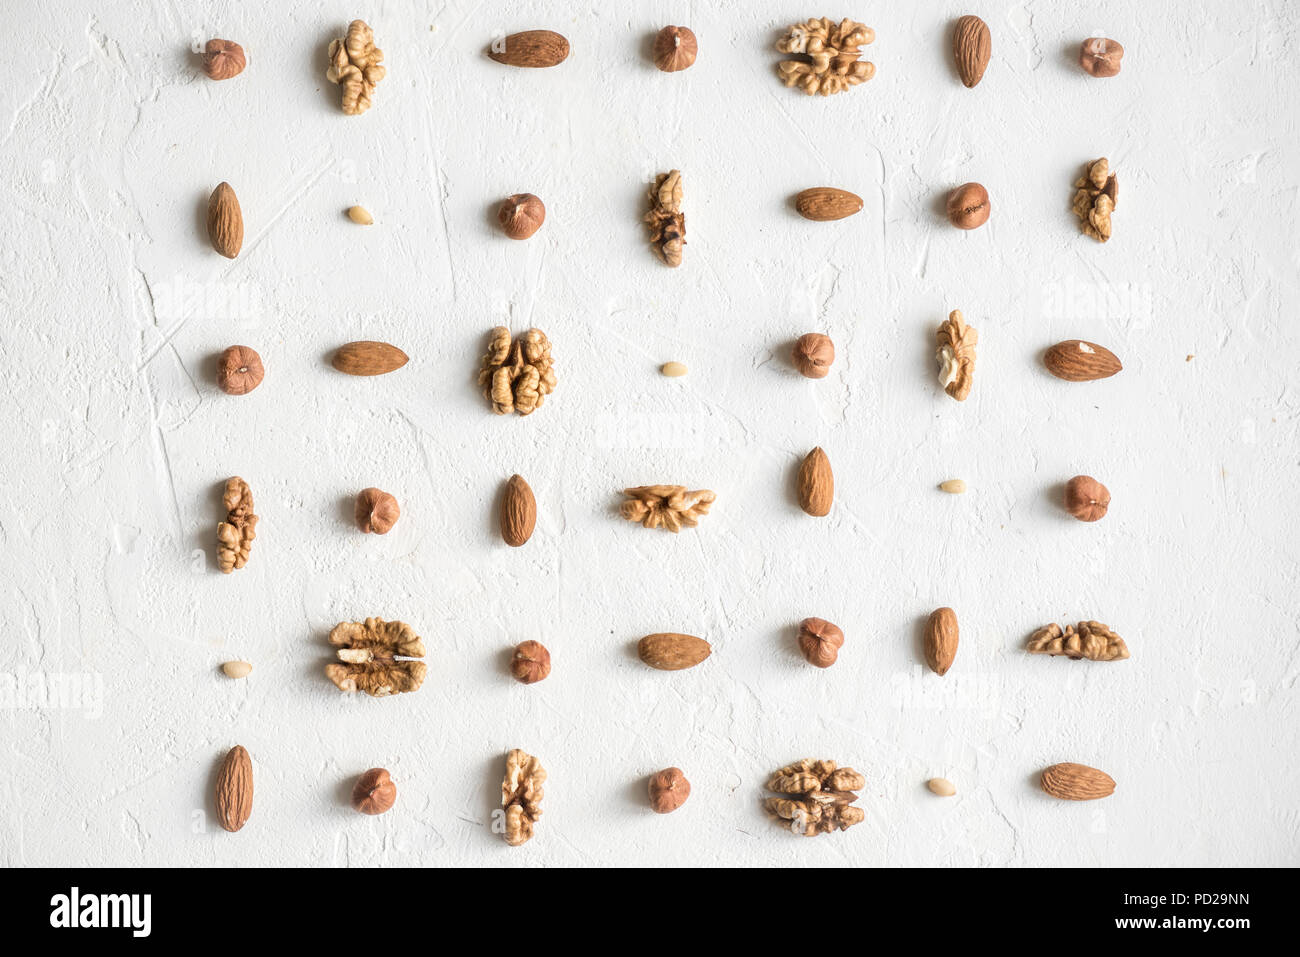 Various nuts (walnuts, hazelnuts, almonds and pine nuts) repetition on white background as pattern, flat lay with copy space. - Stock Image